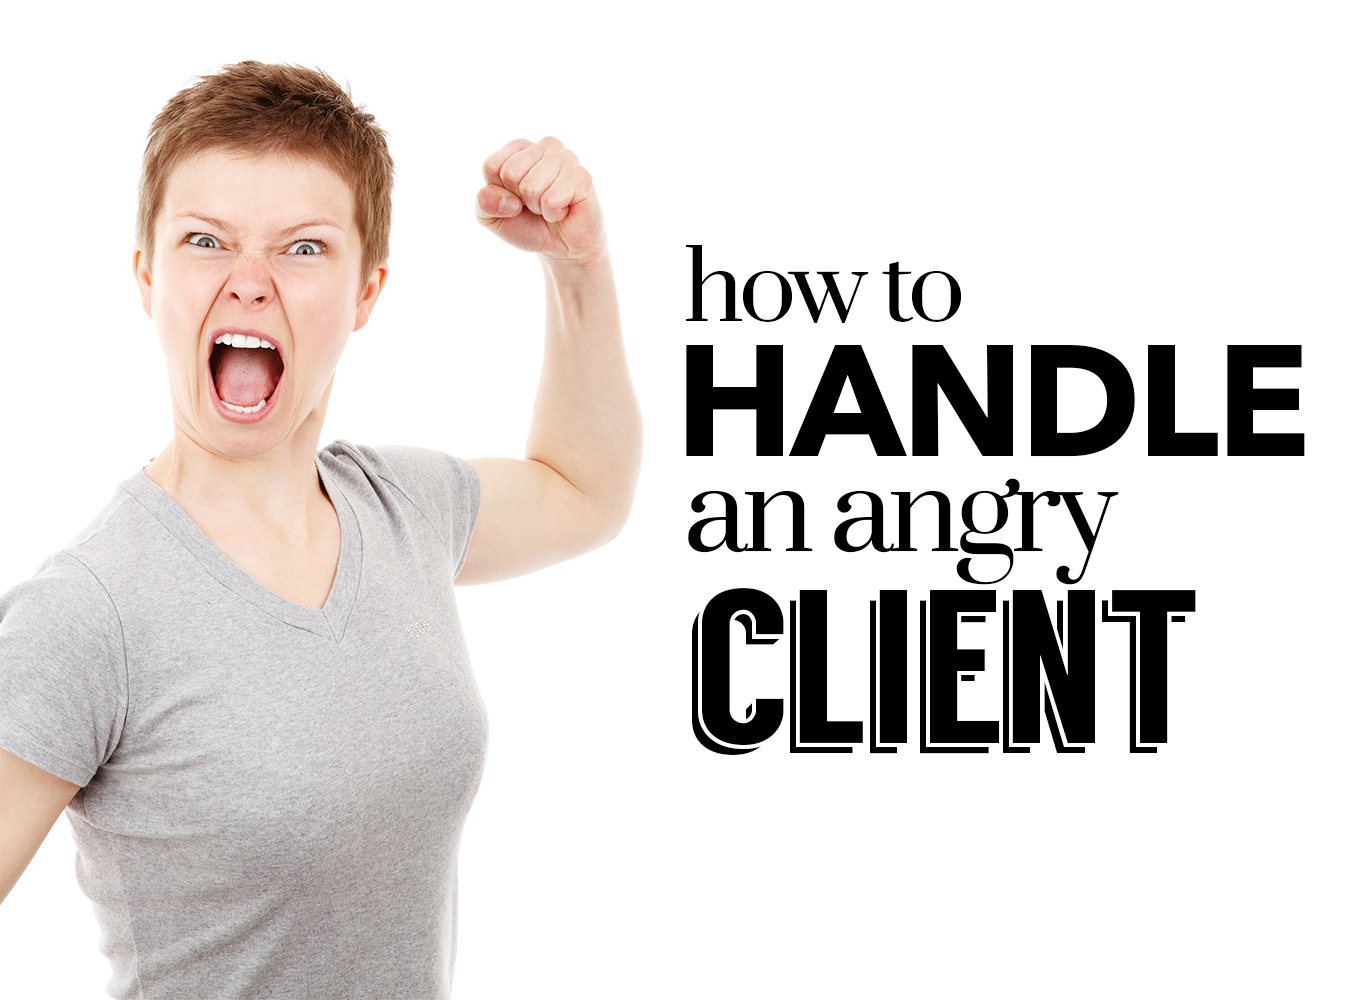 how-to-handle-an-angry-client